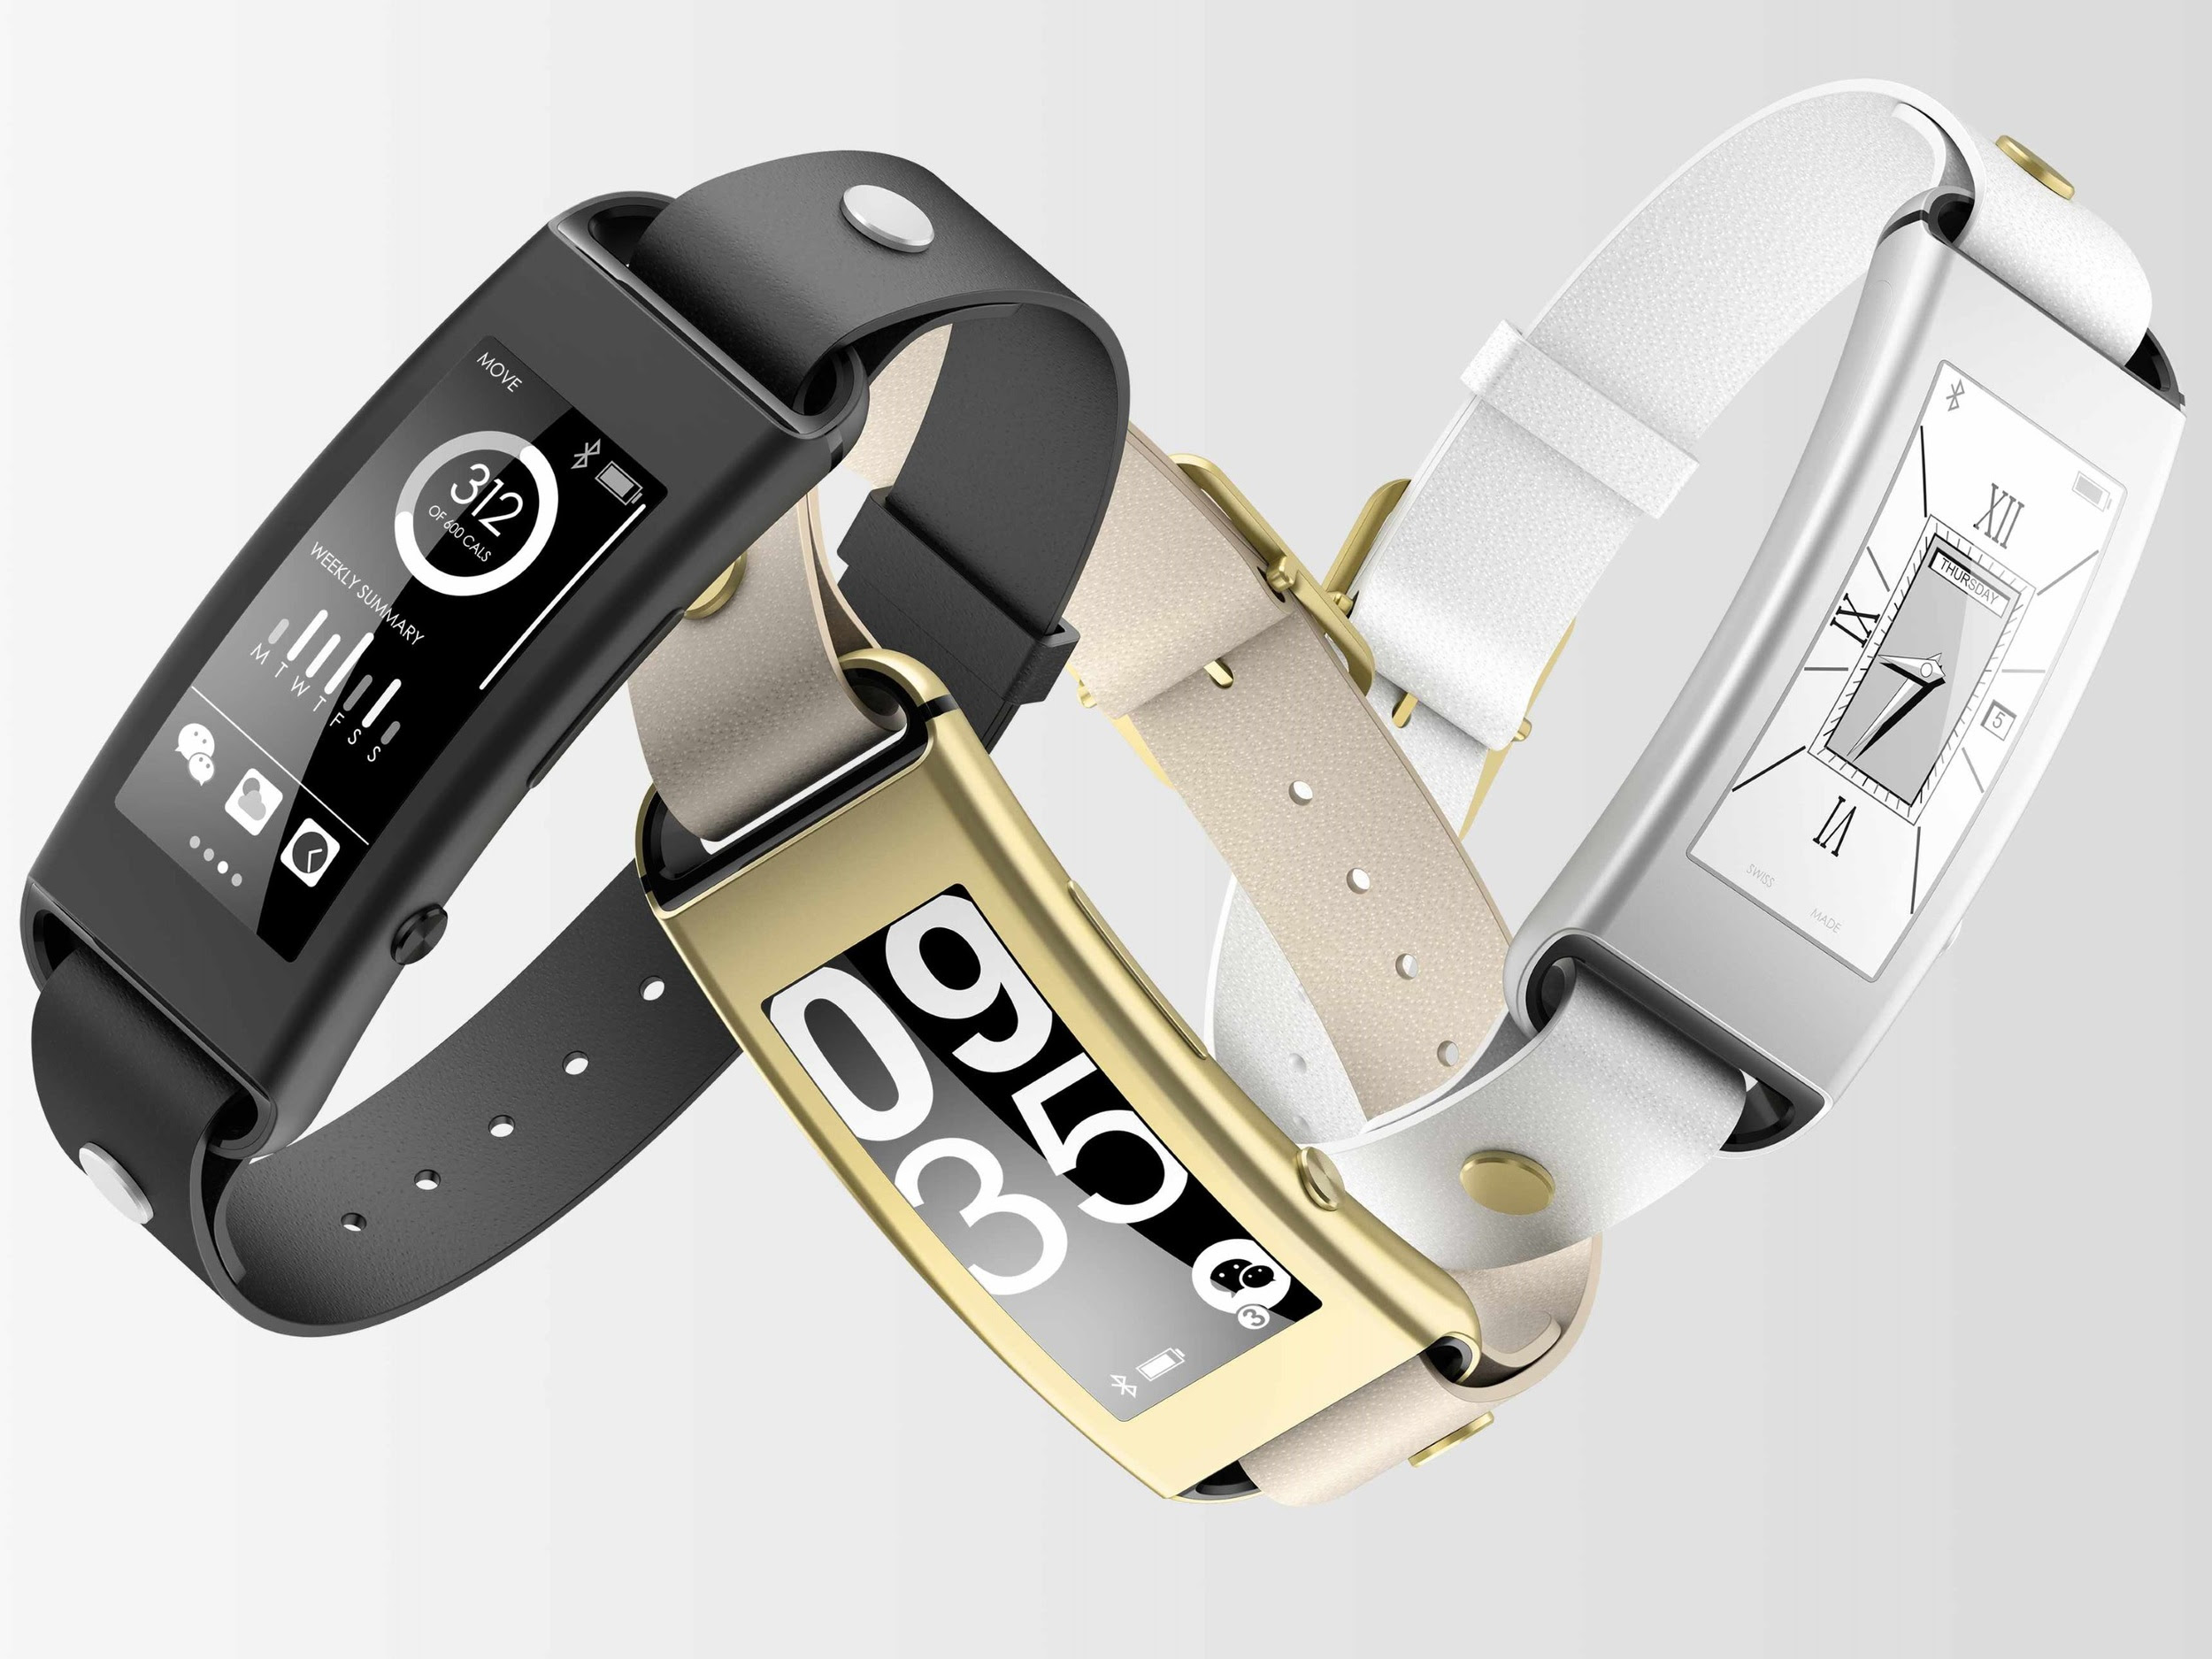 The $89 Lenovo Vibe Band